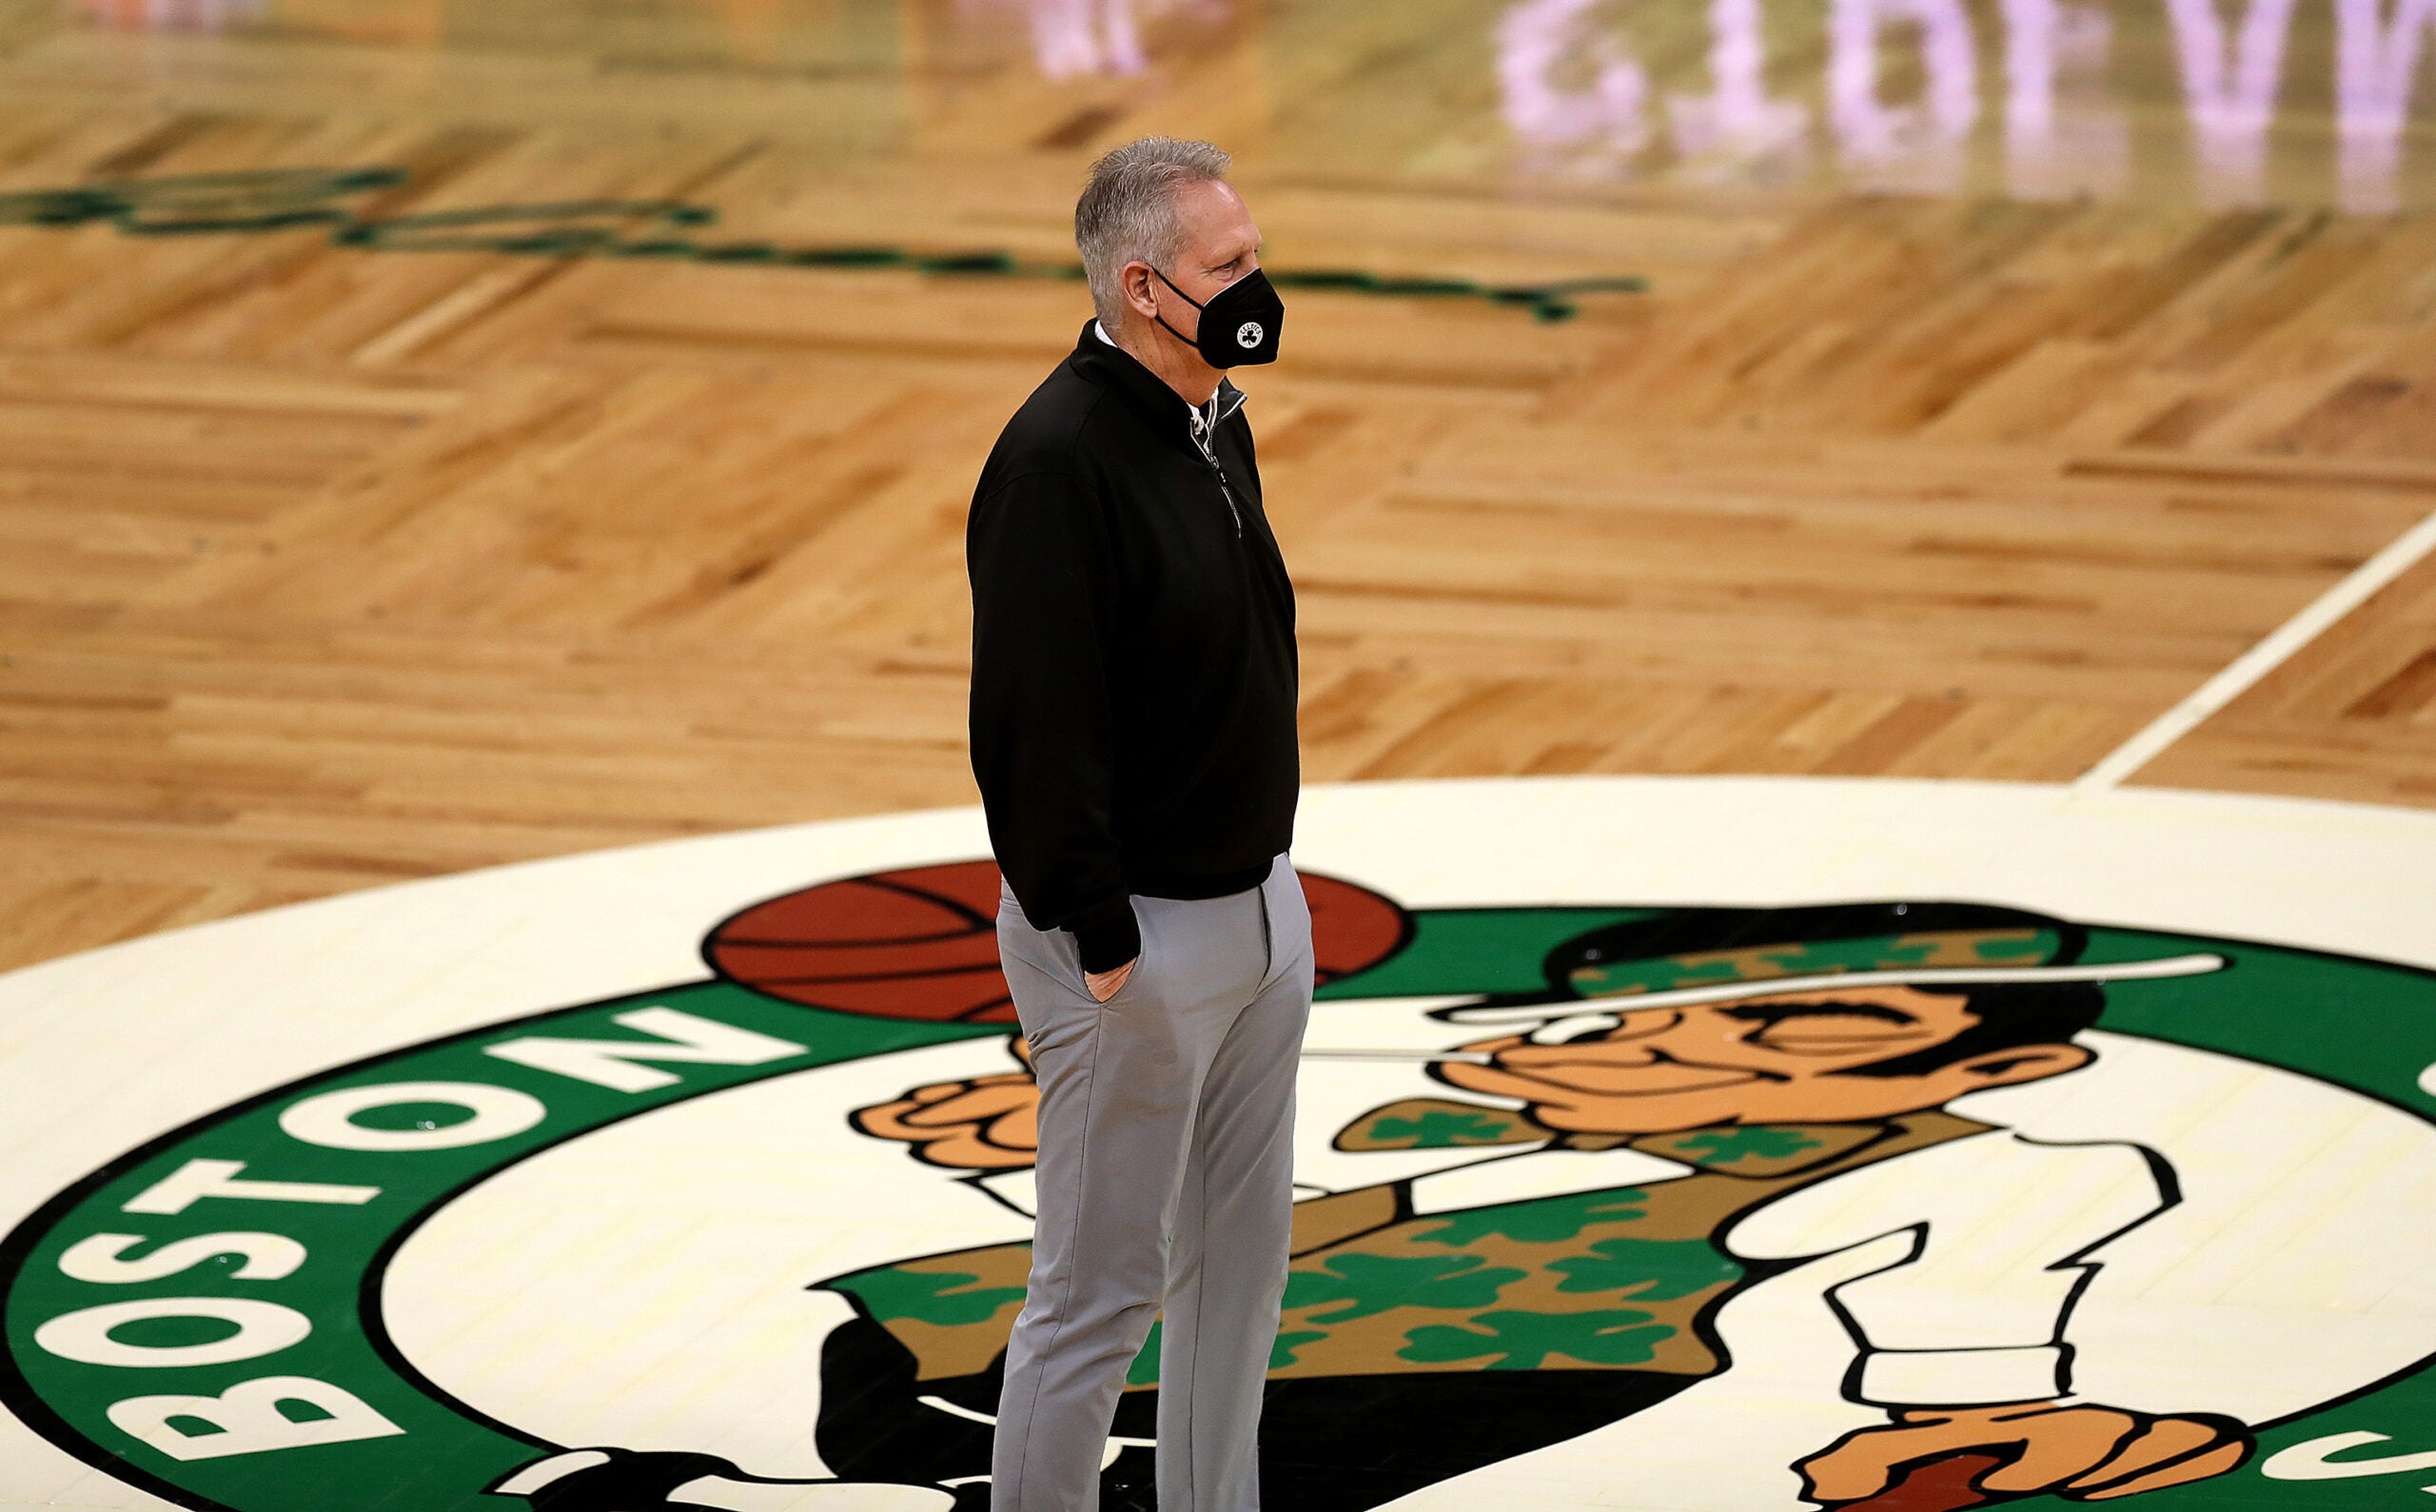 Potential roster moves Danny Ainge and Celtics can make this offseason